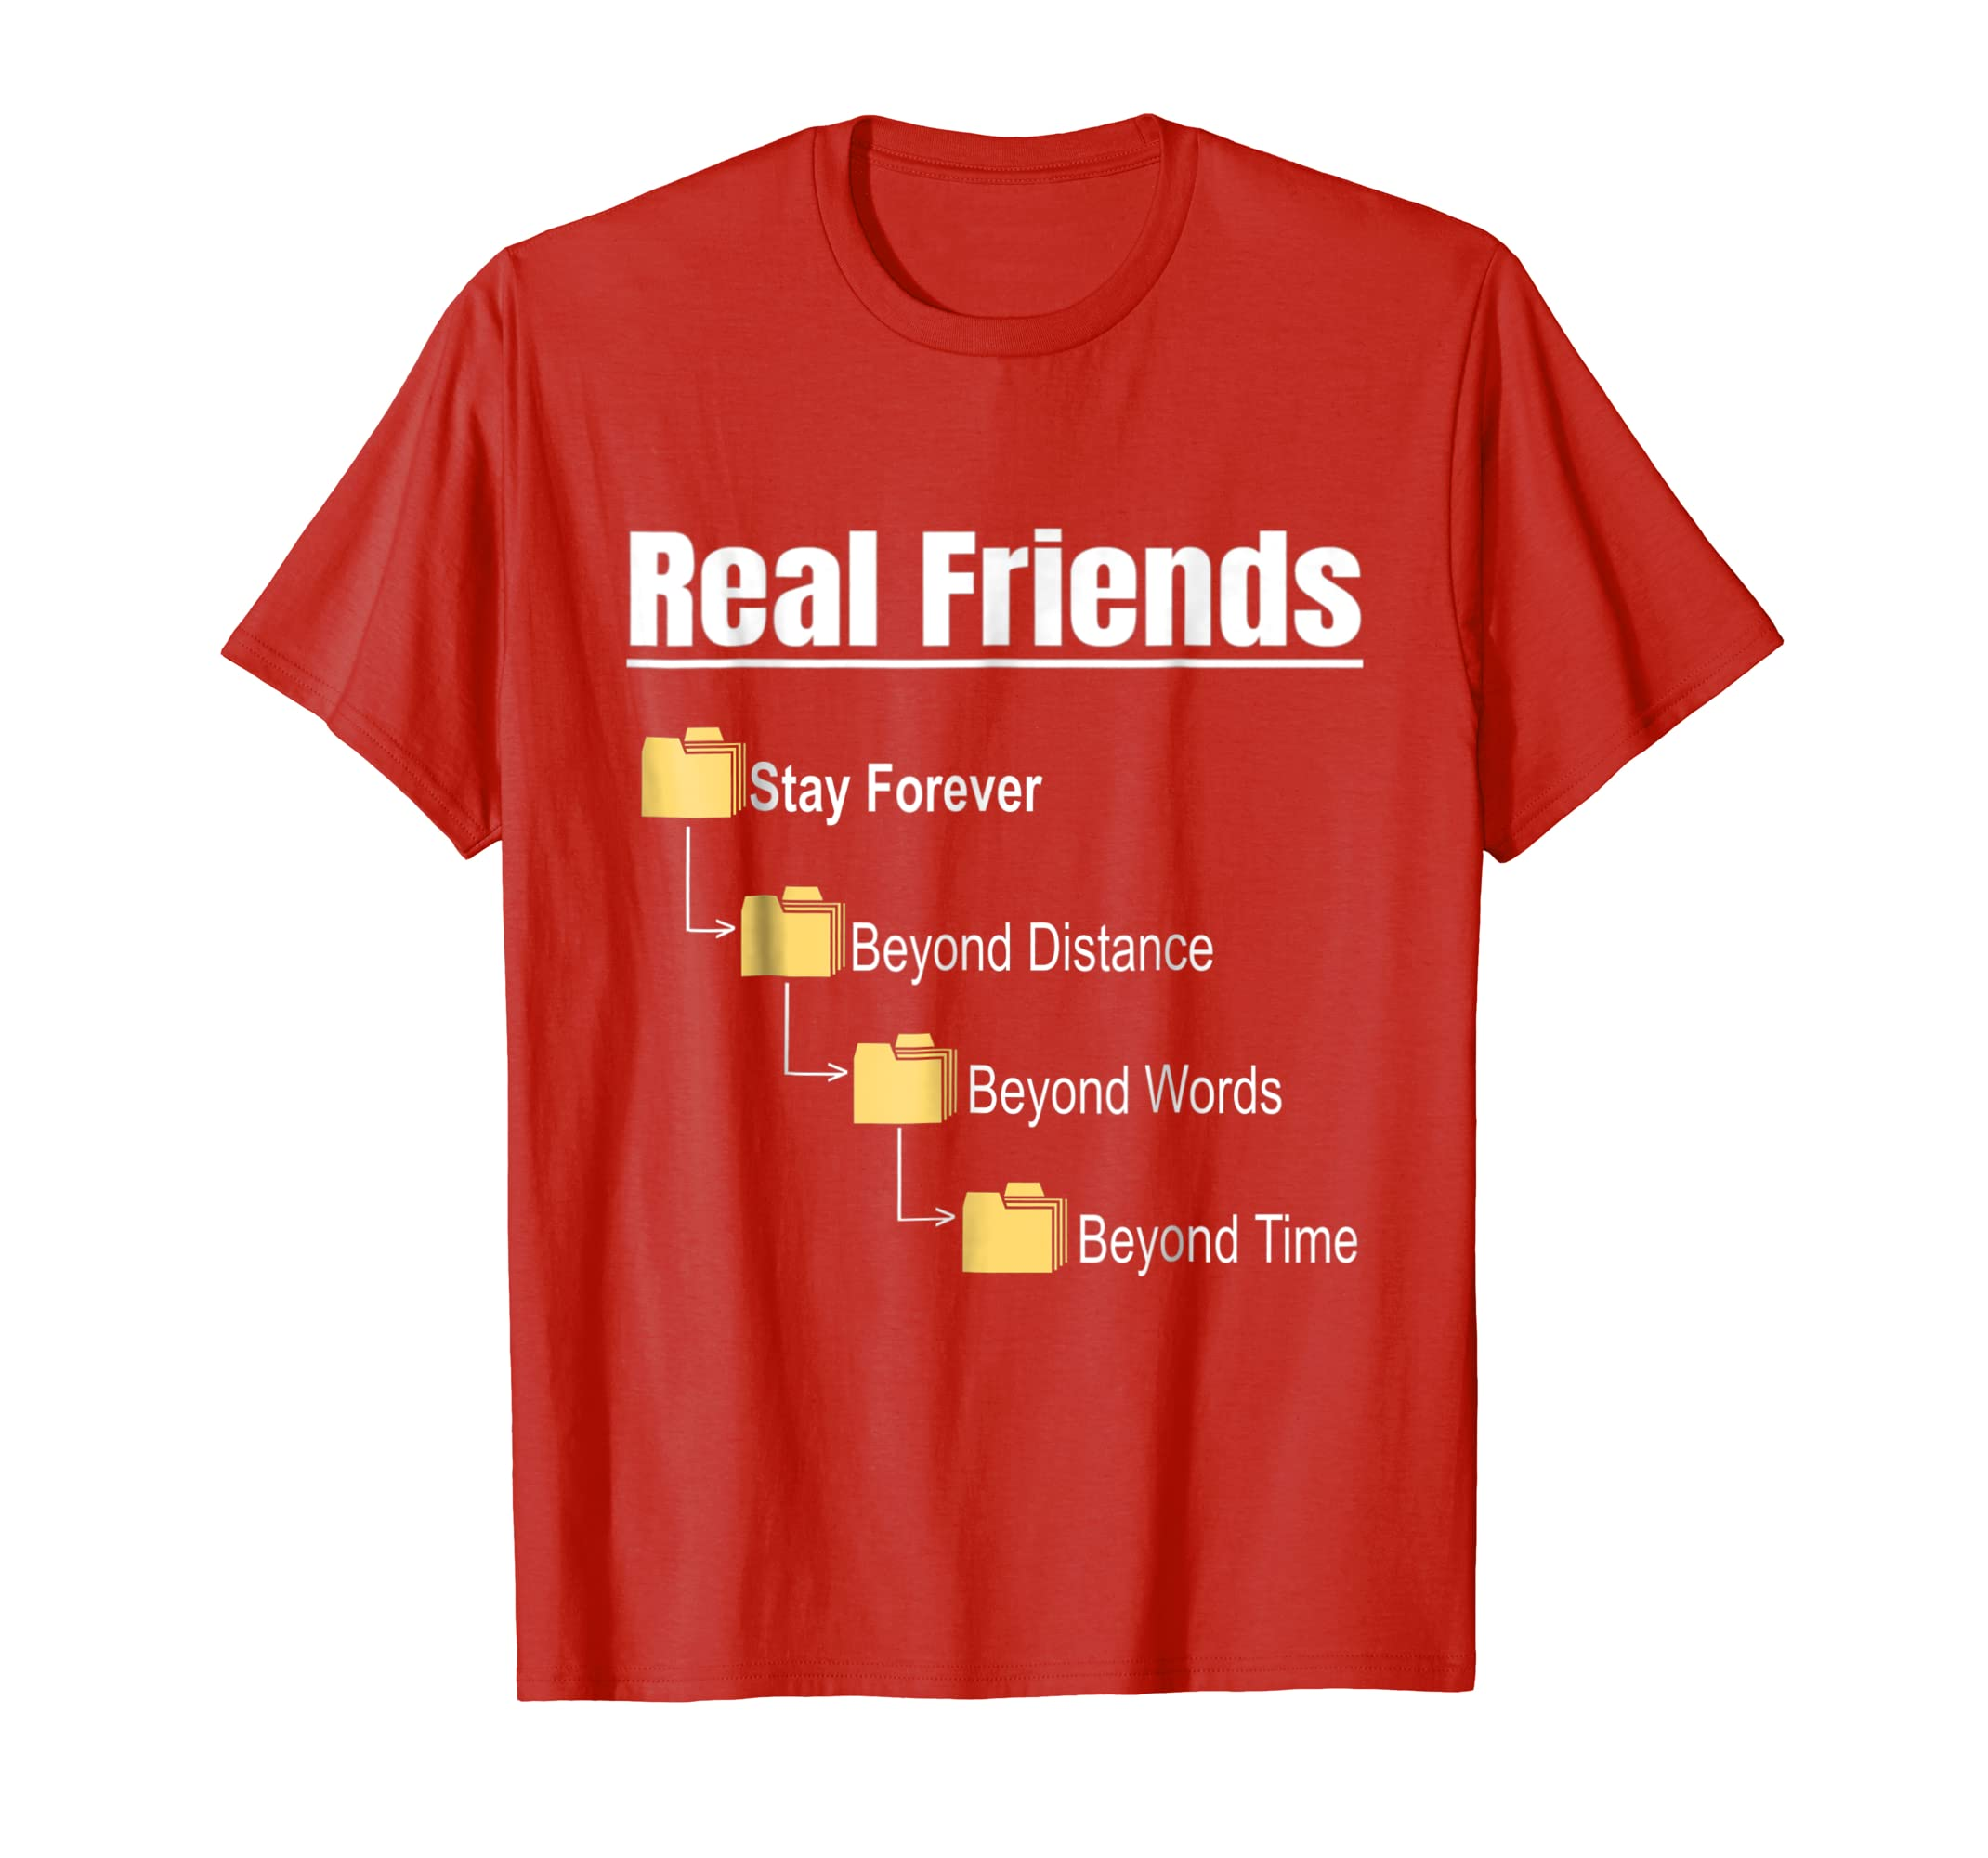 friendship day T-shirt,Real Friends gift, stay forever,funny-AZP